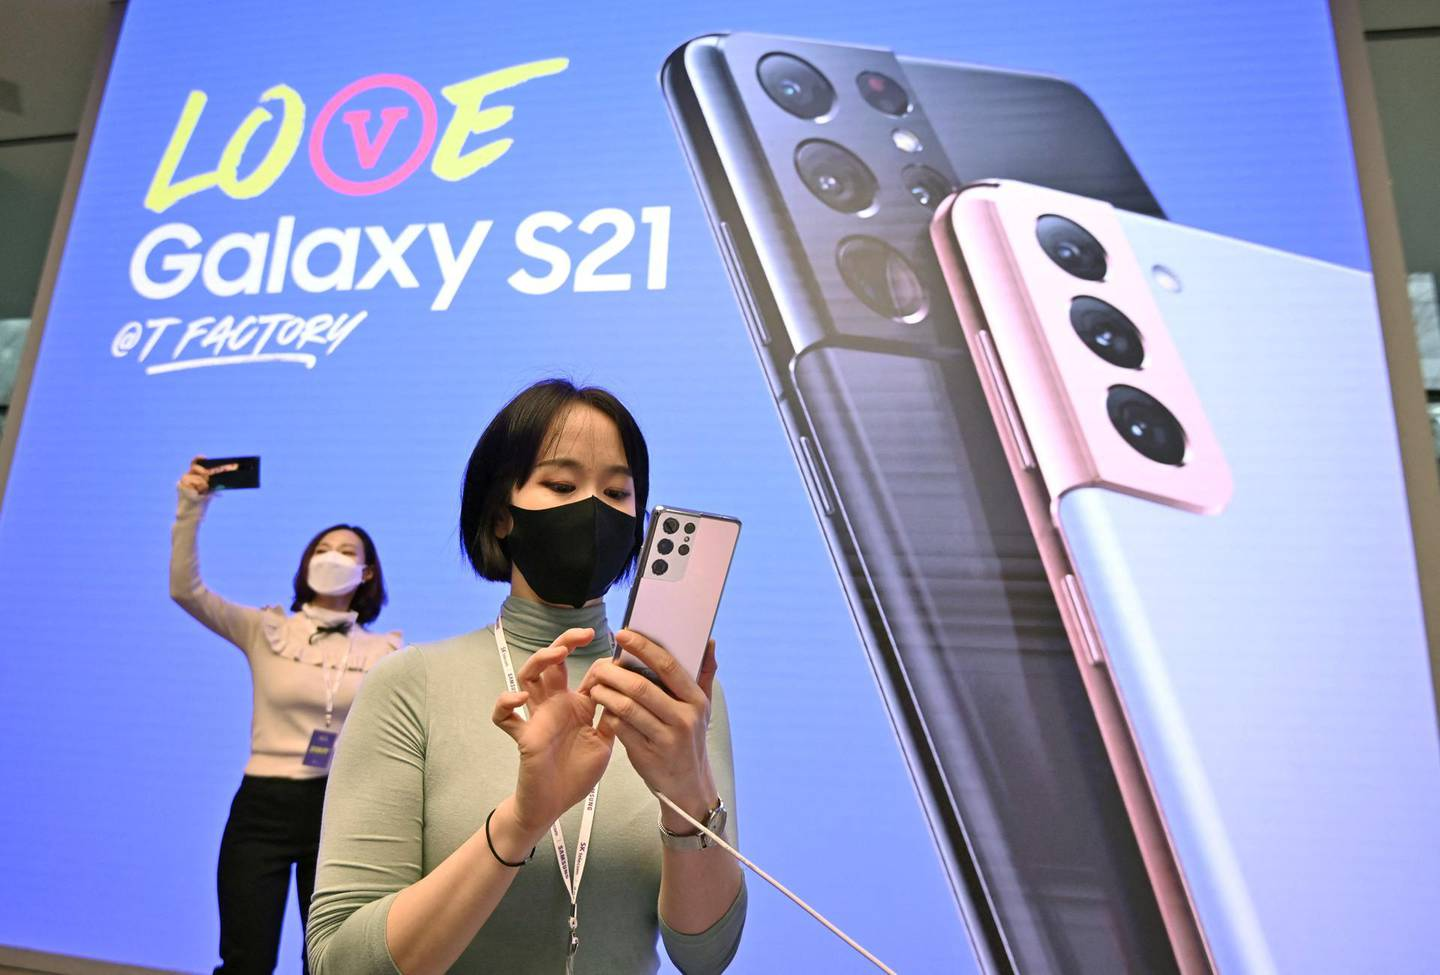 A woman looks at the Samsung Galaxy S21 smartphone during a domestic launch event at a flagship store of SK Telecom in Seoul on January 22, 2021. (Photo by Jung Yeon-je / AFP)